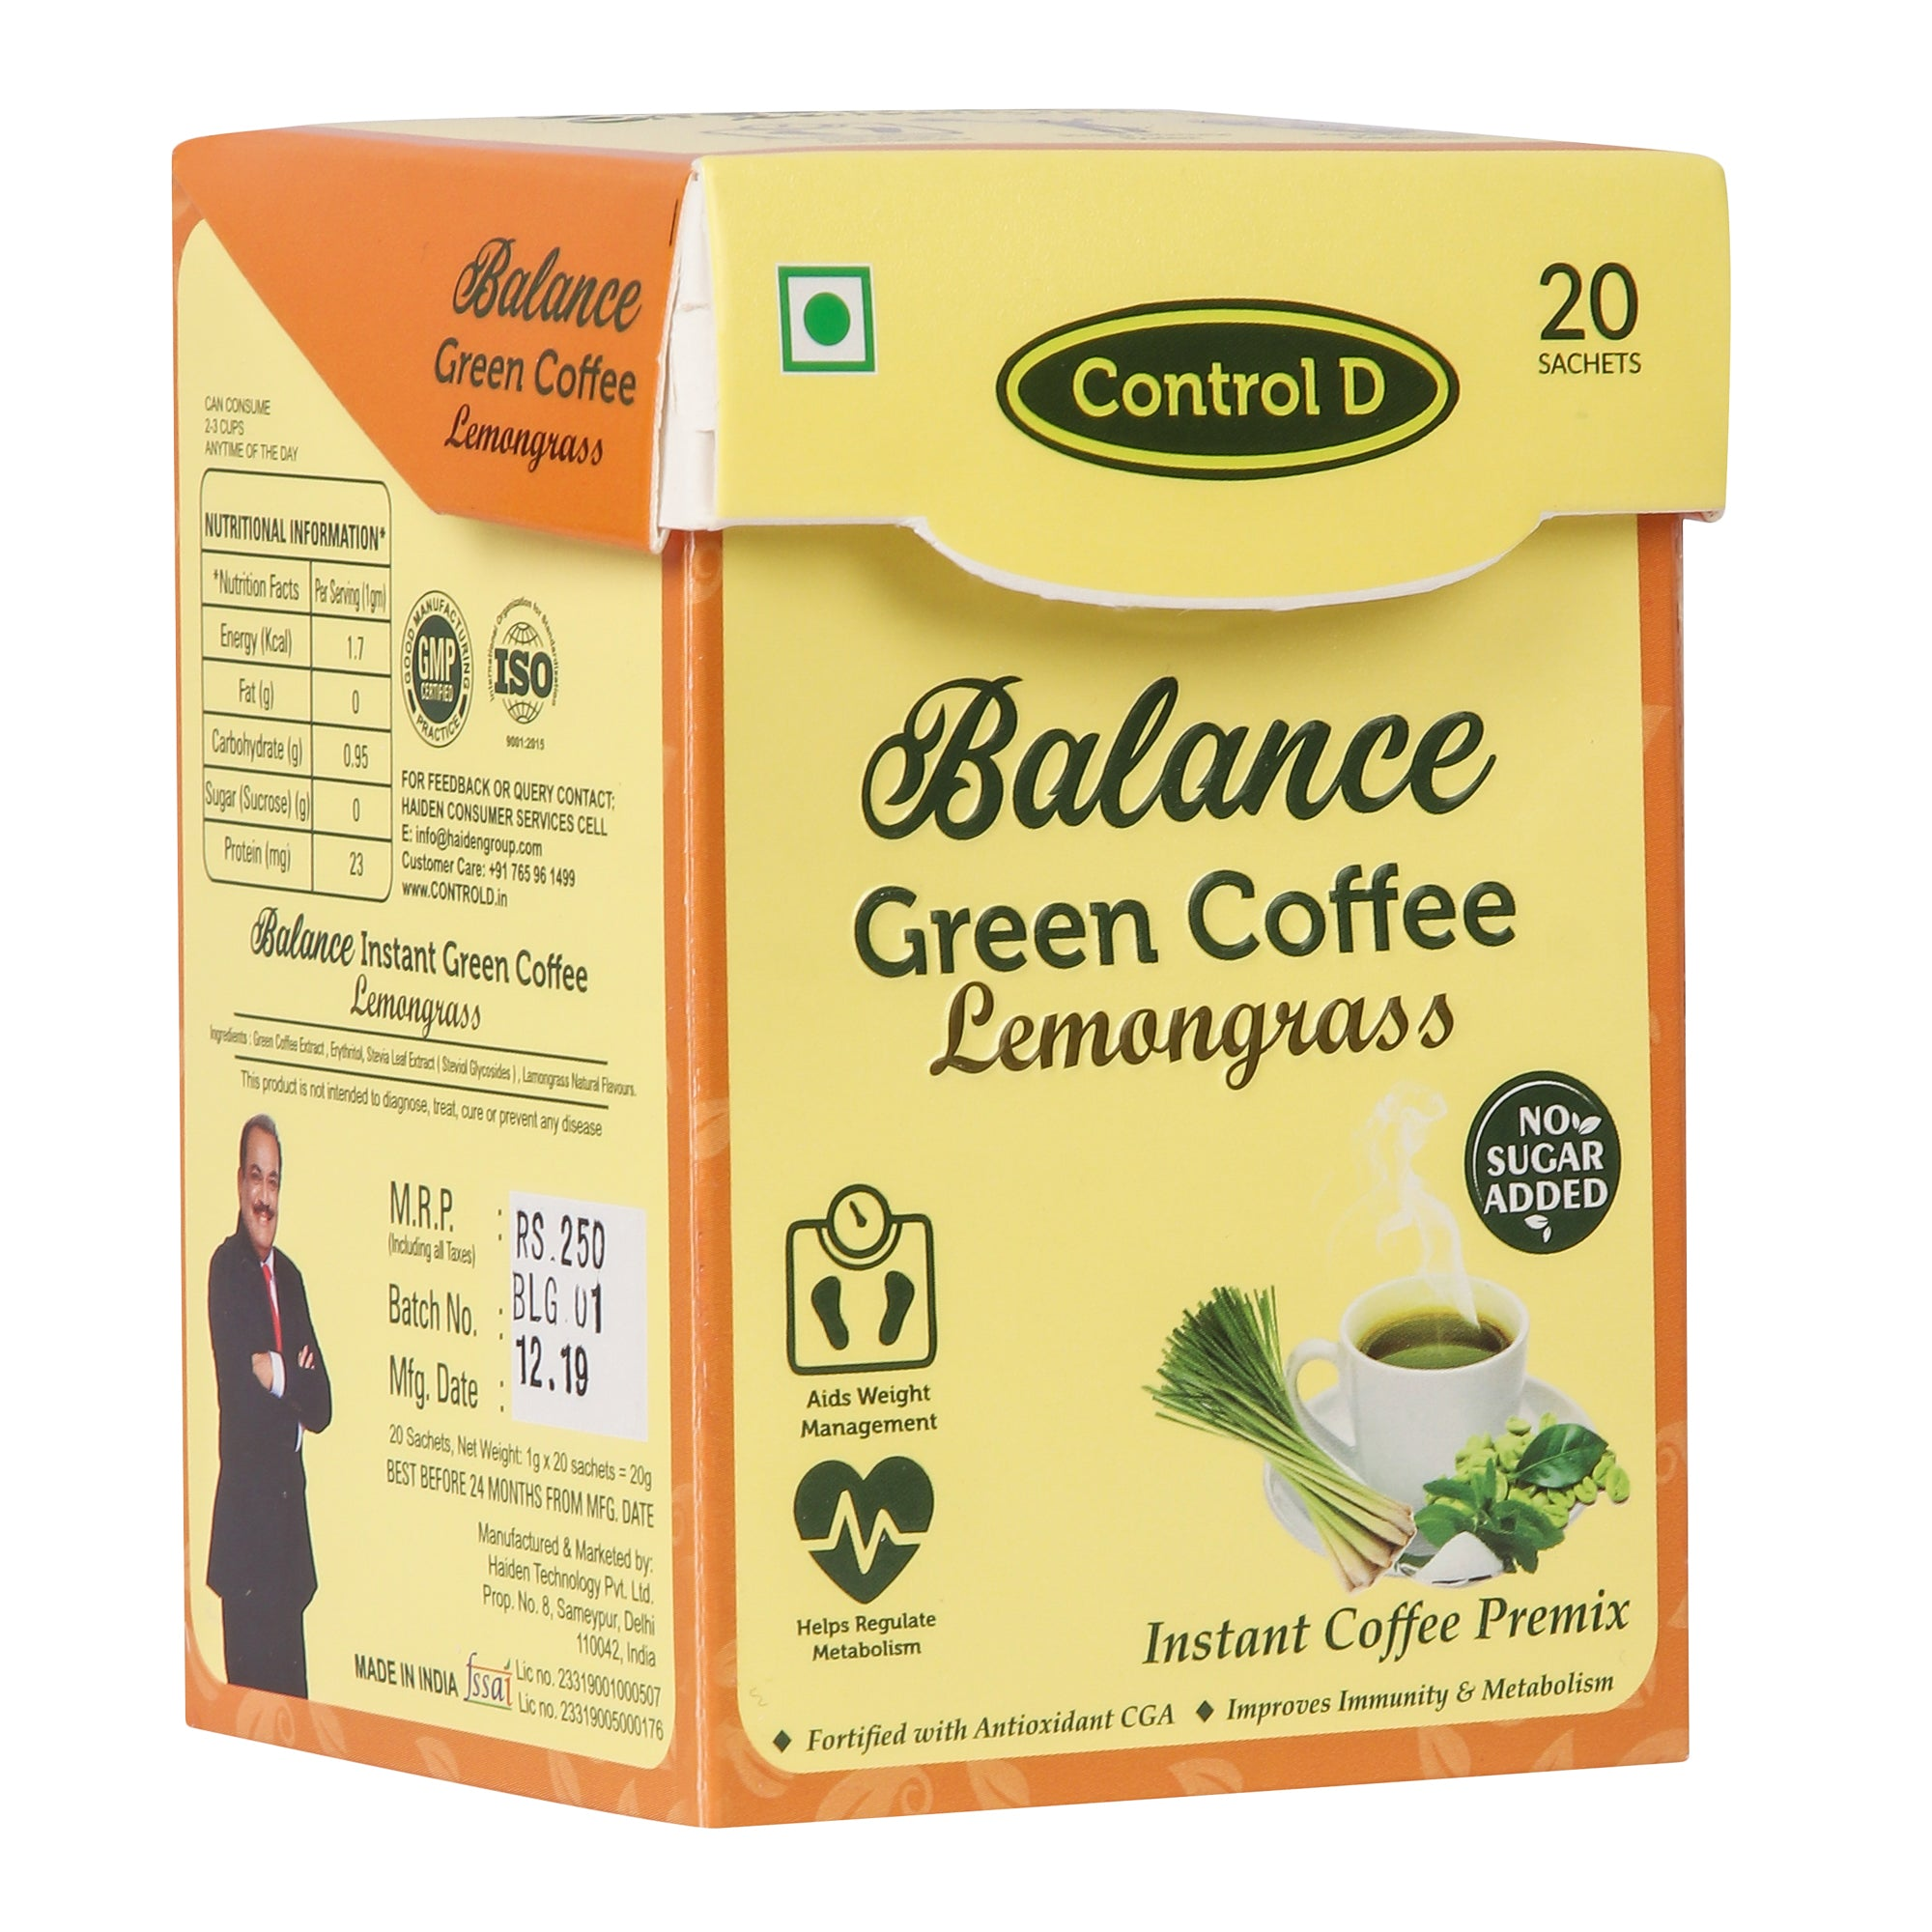 Balance Lemongrass Green Coffee